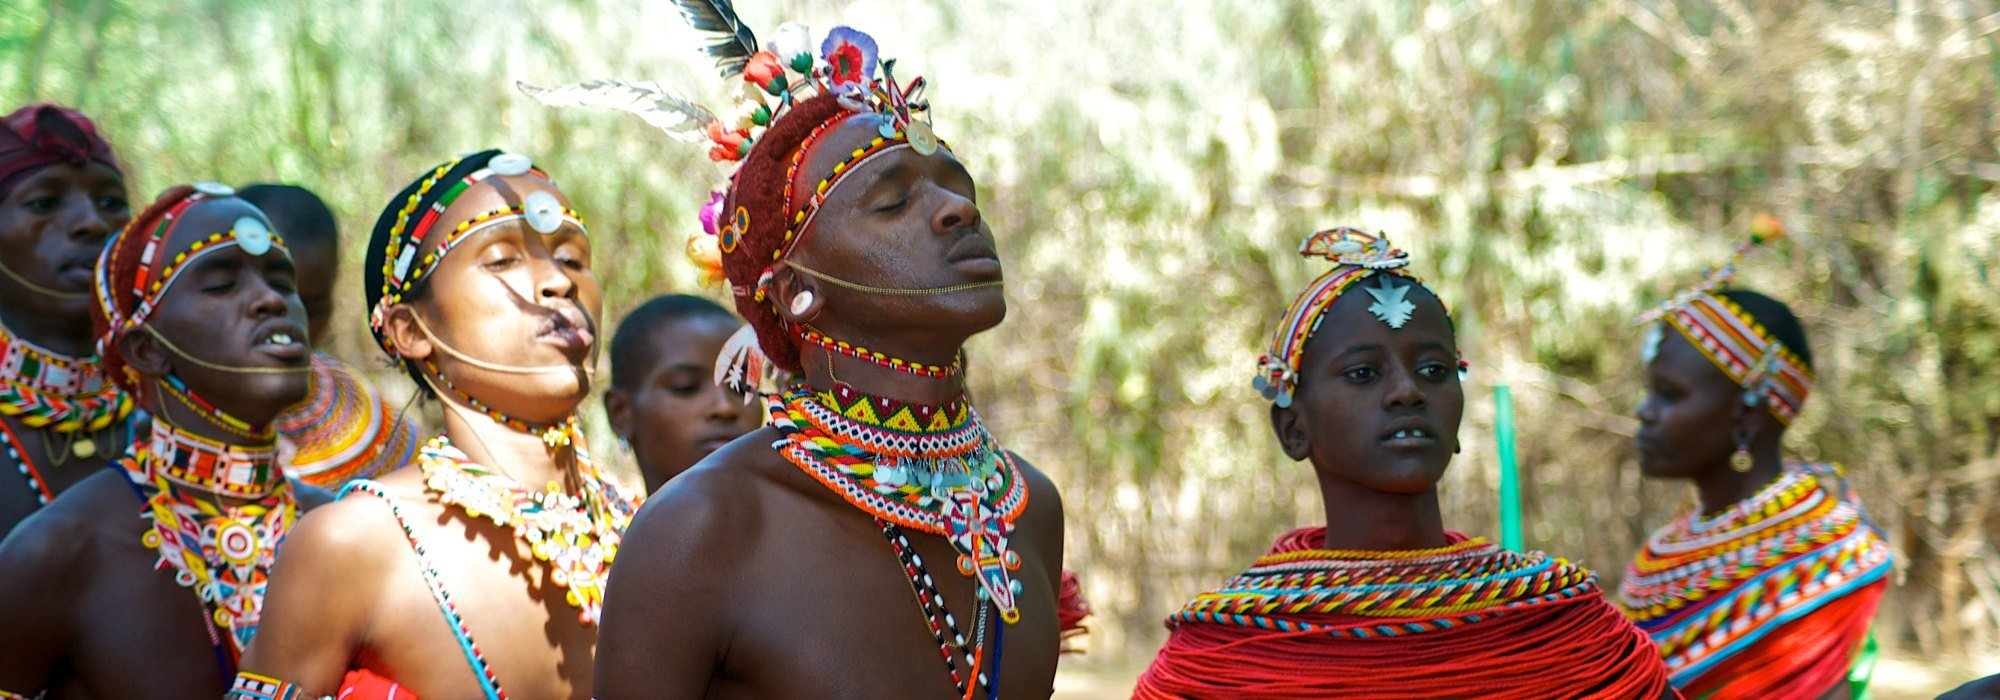 Samburu Tribe in Kenya